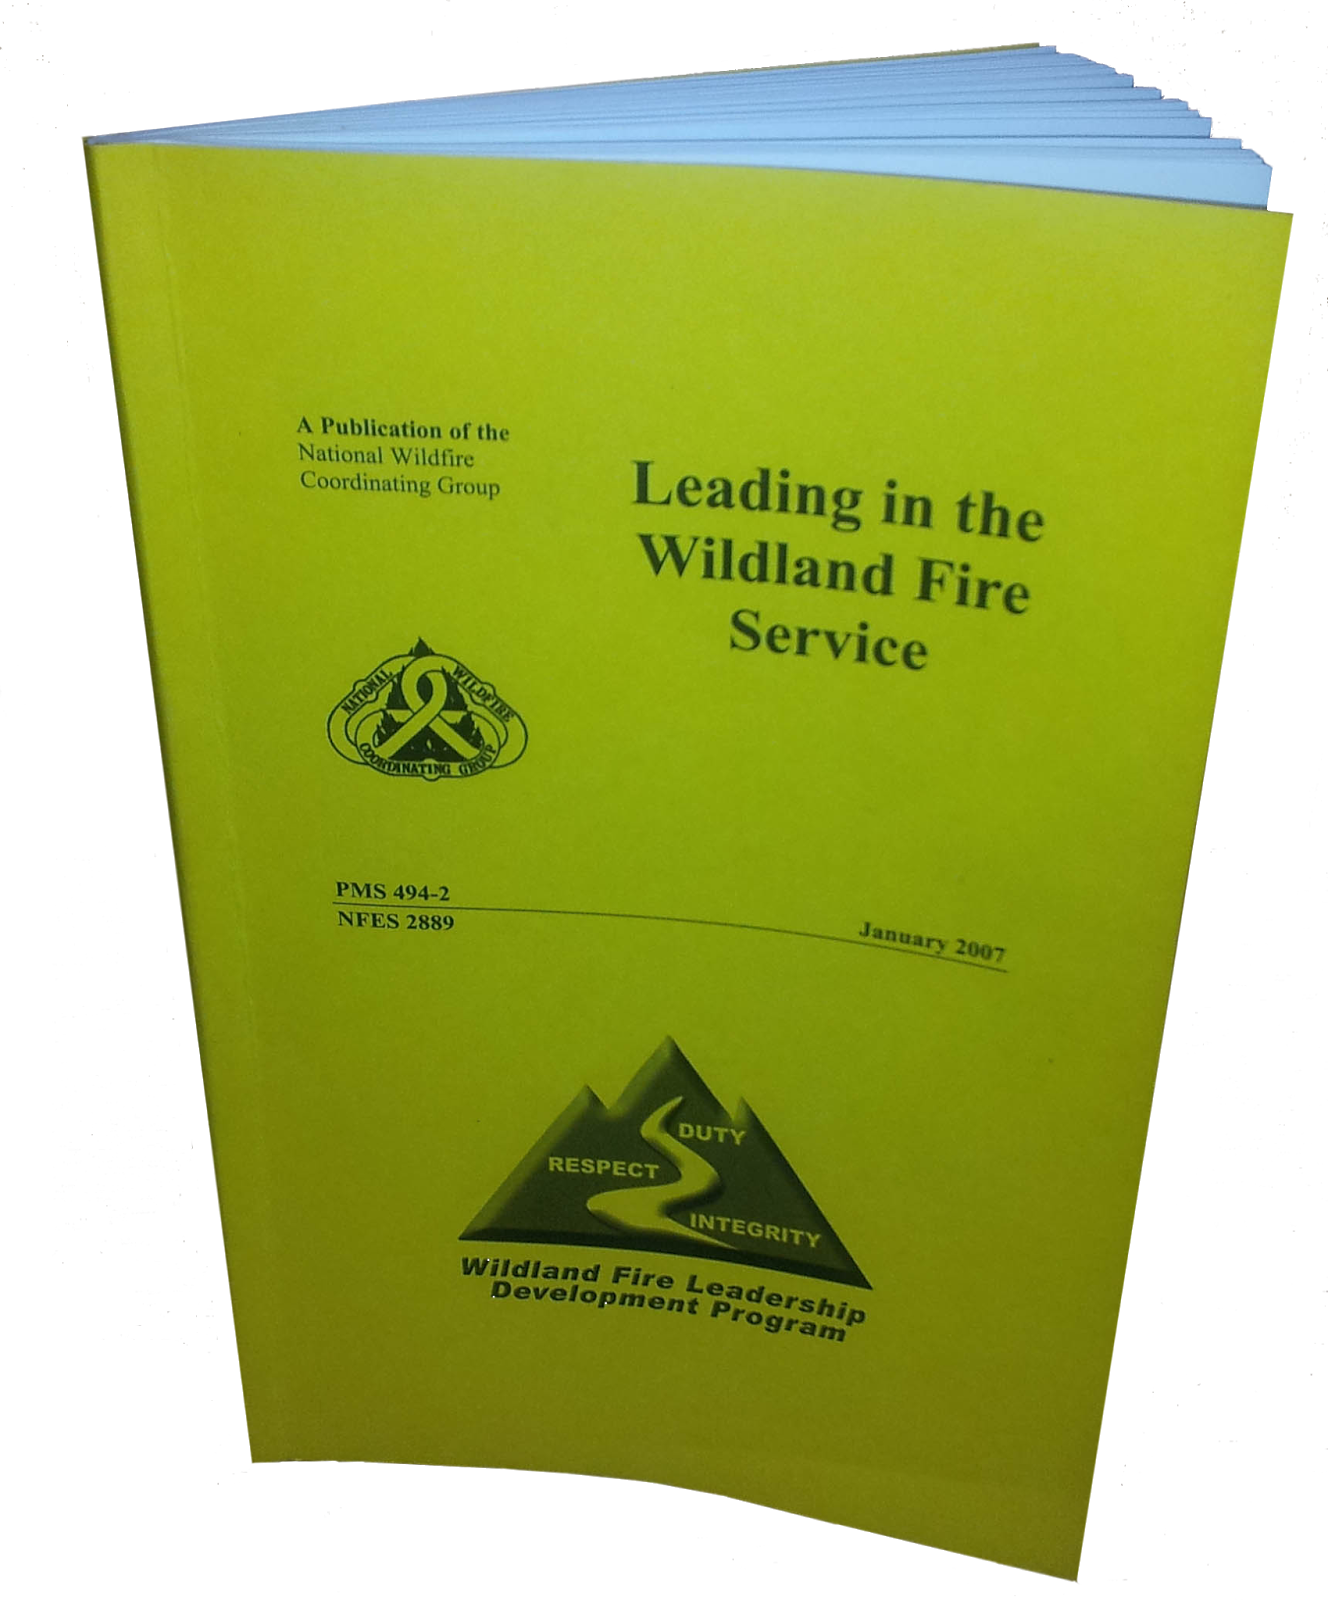 Leading in the Wildland Fire Service publication